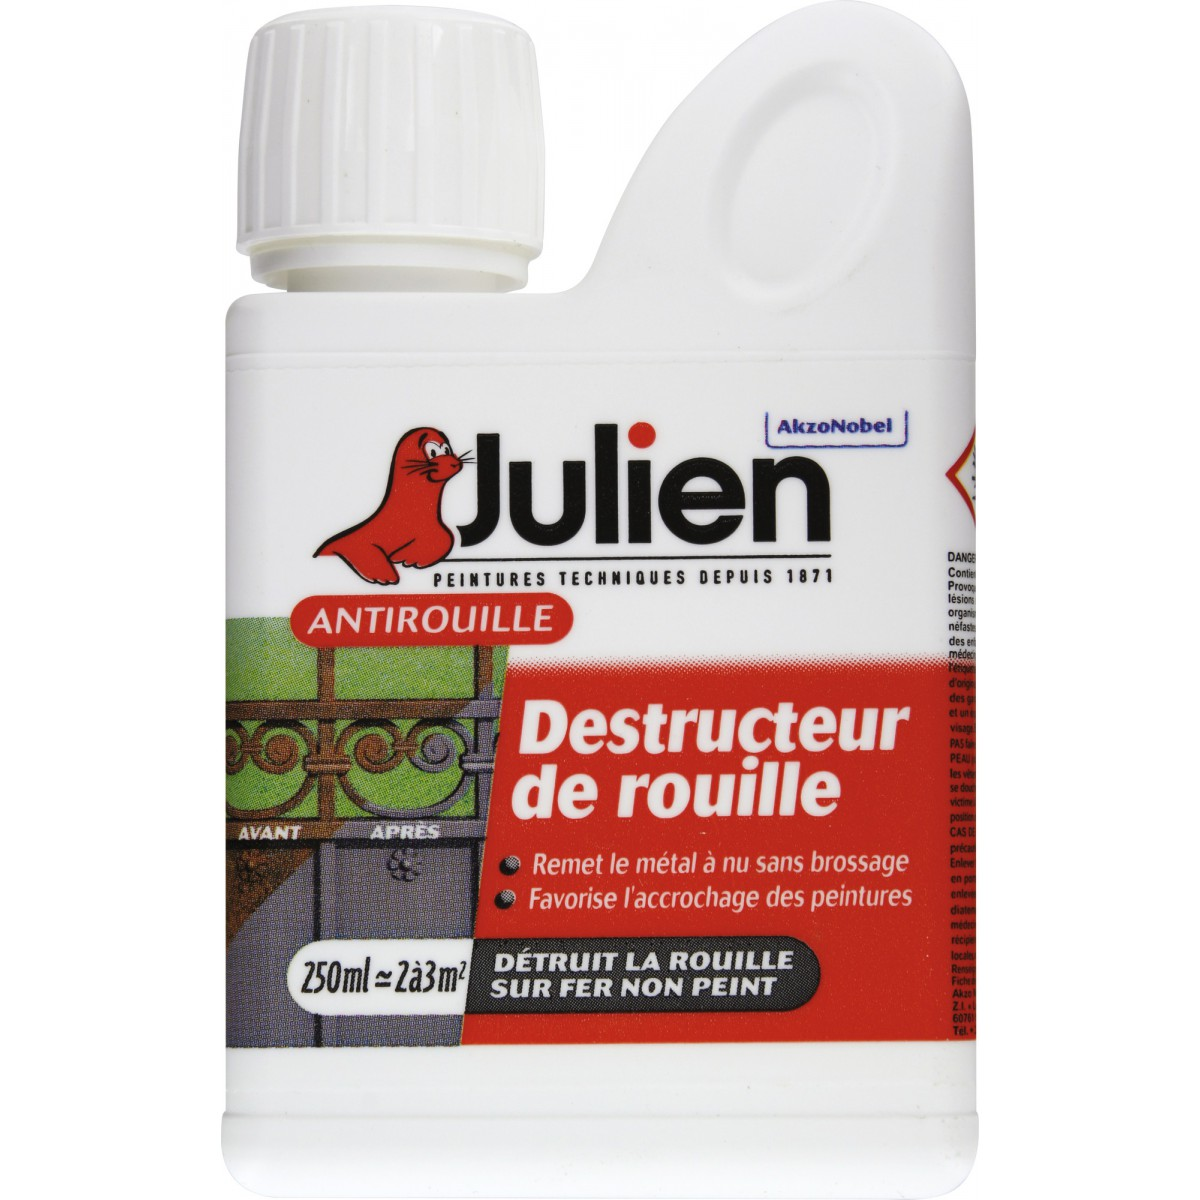 Destructeur de rouille Ot rouille Julien - Bidon 250 ml